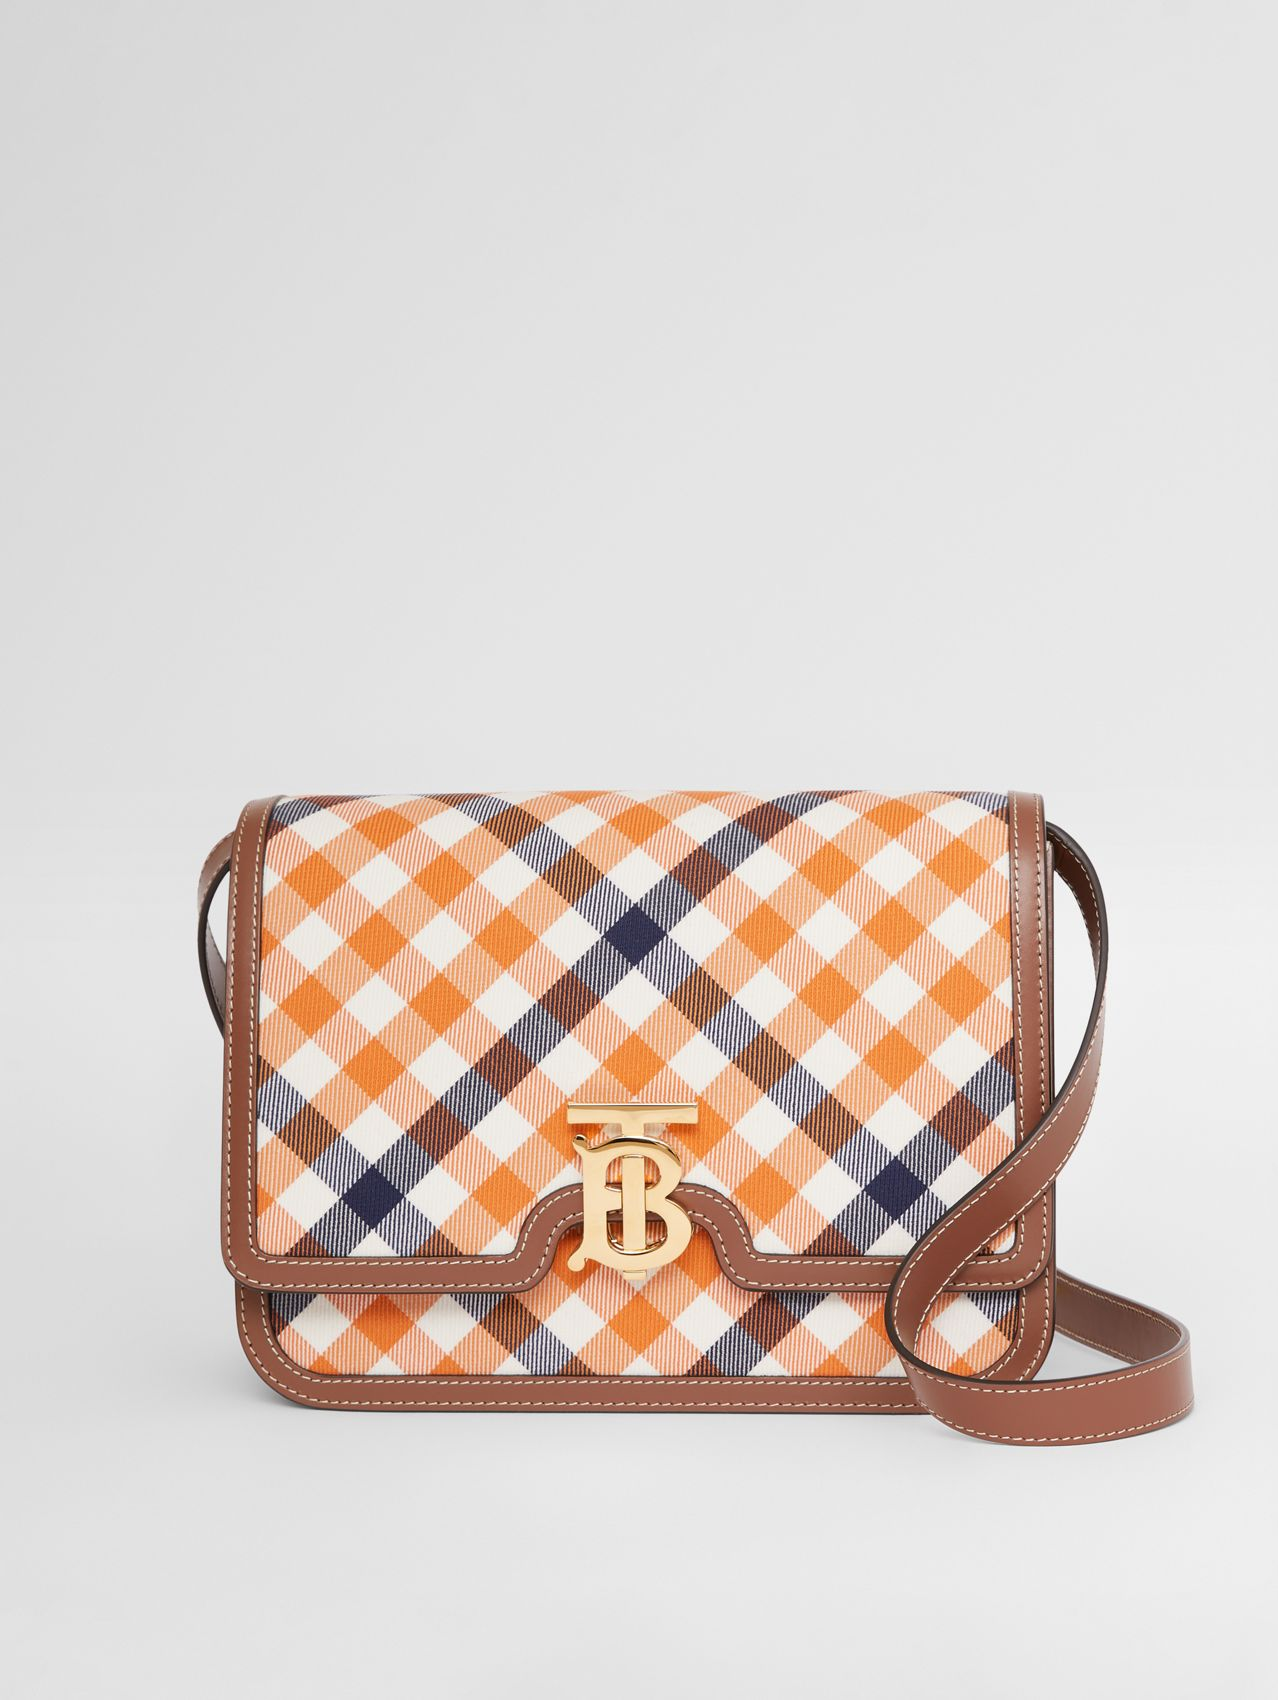 Medium Gingham Wool Cotton and Leather TB Bag in Bright Orange